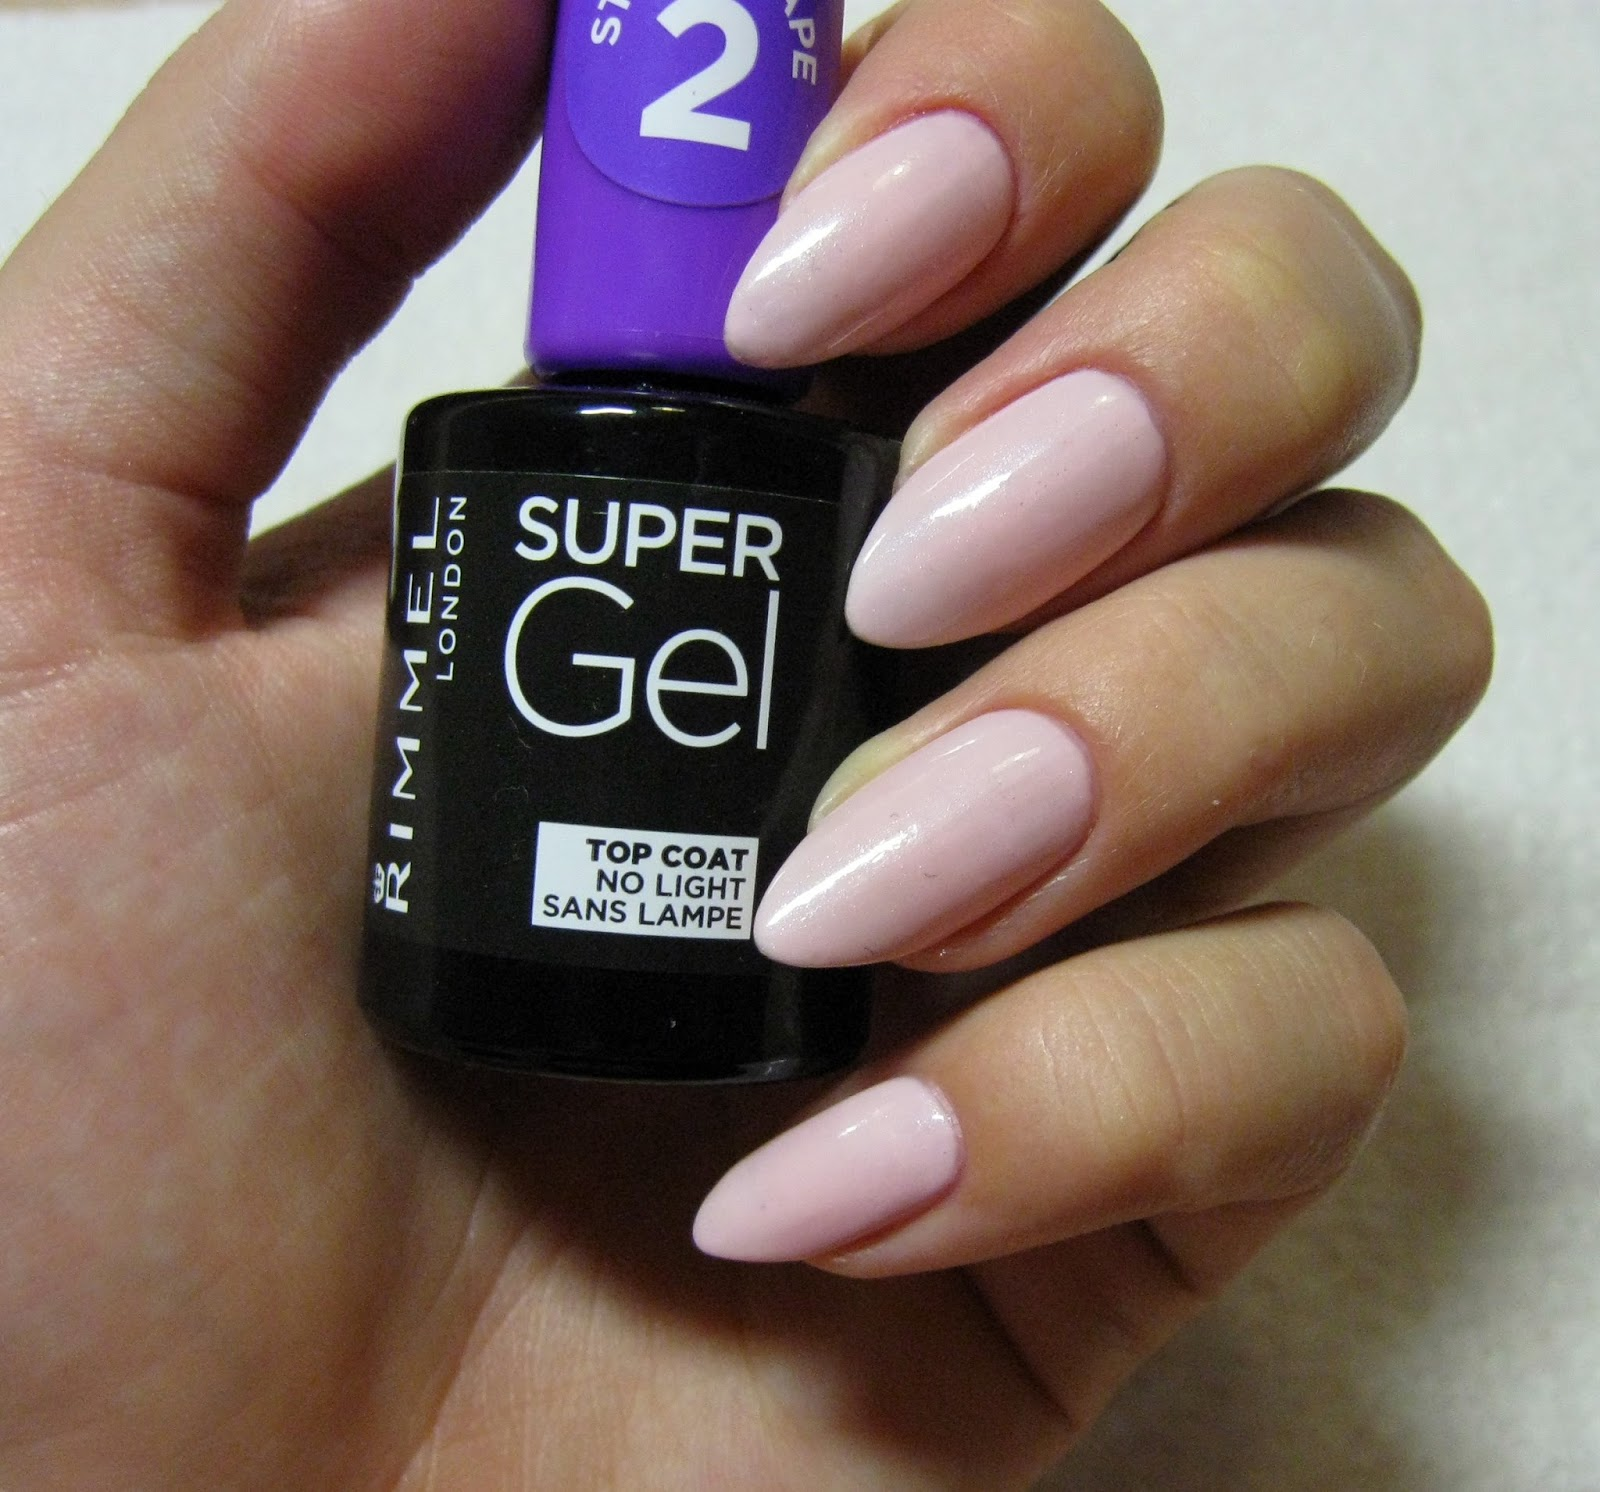 Www Wiolka94 Blogspot Com Rimmel Super Gel 021 New Romantic